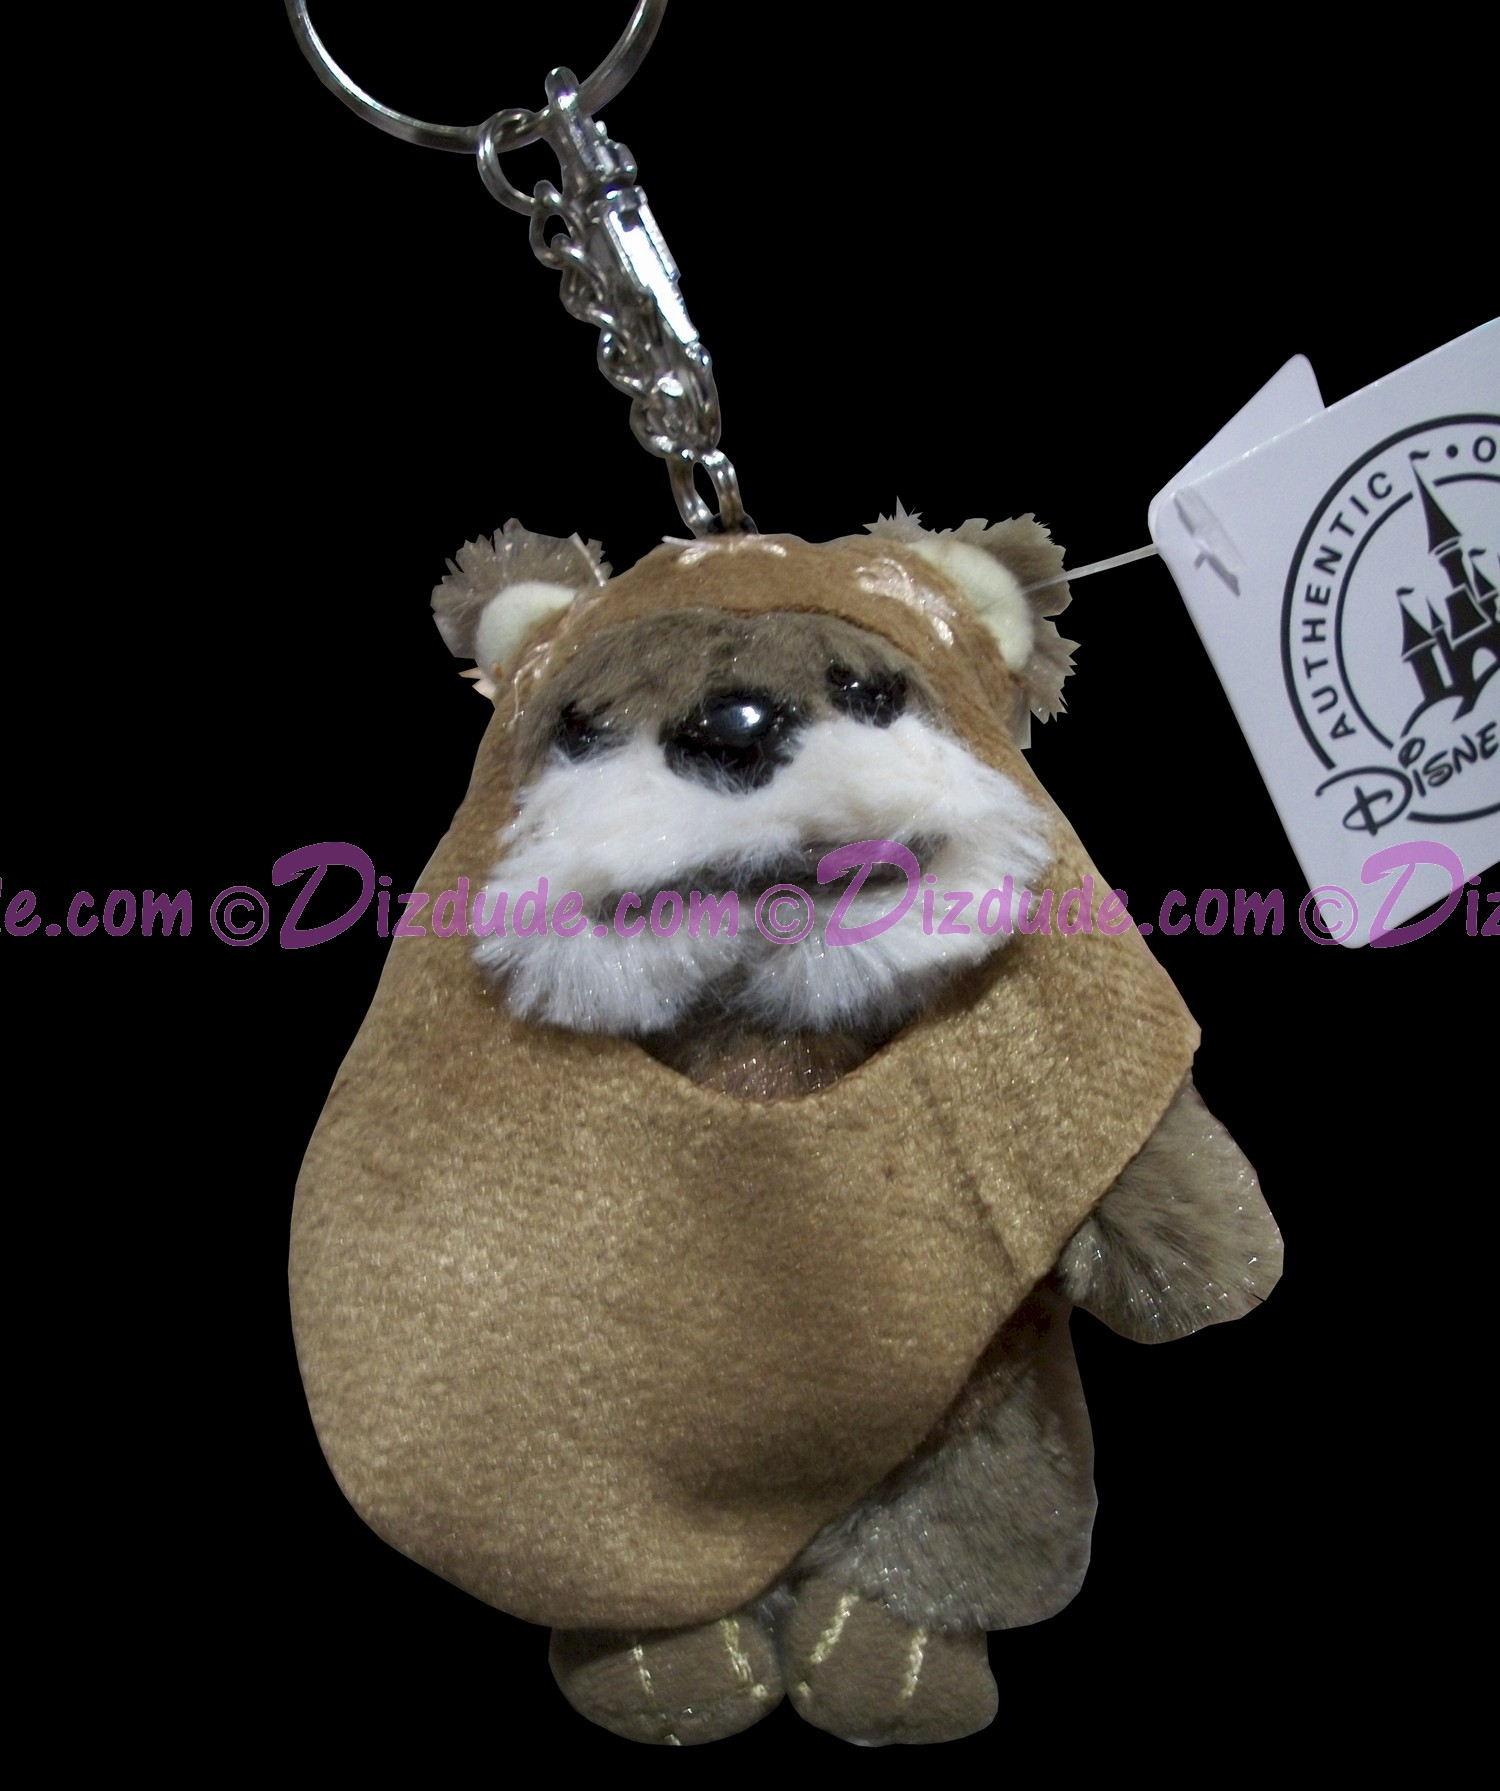 Star Wars Ewok Plush Key Chain or Christmas Ornament © Dizdude.com